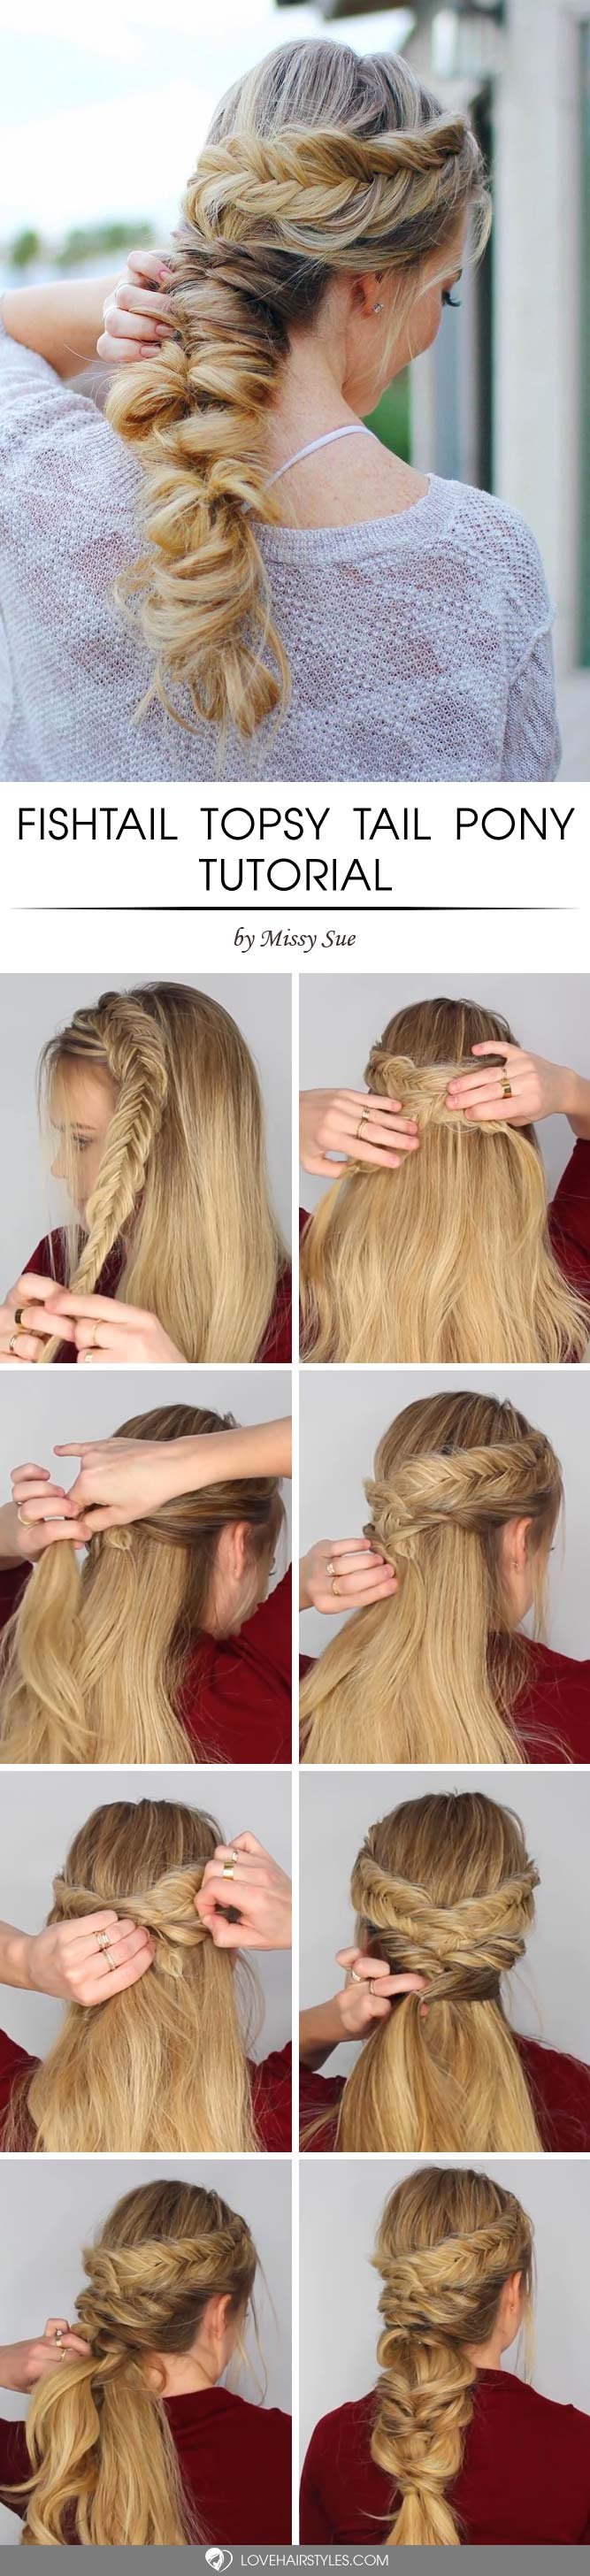 Fishtail Pony #topsytail #tutorials #hairstyles